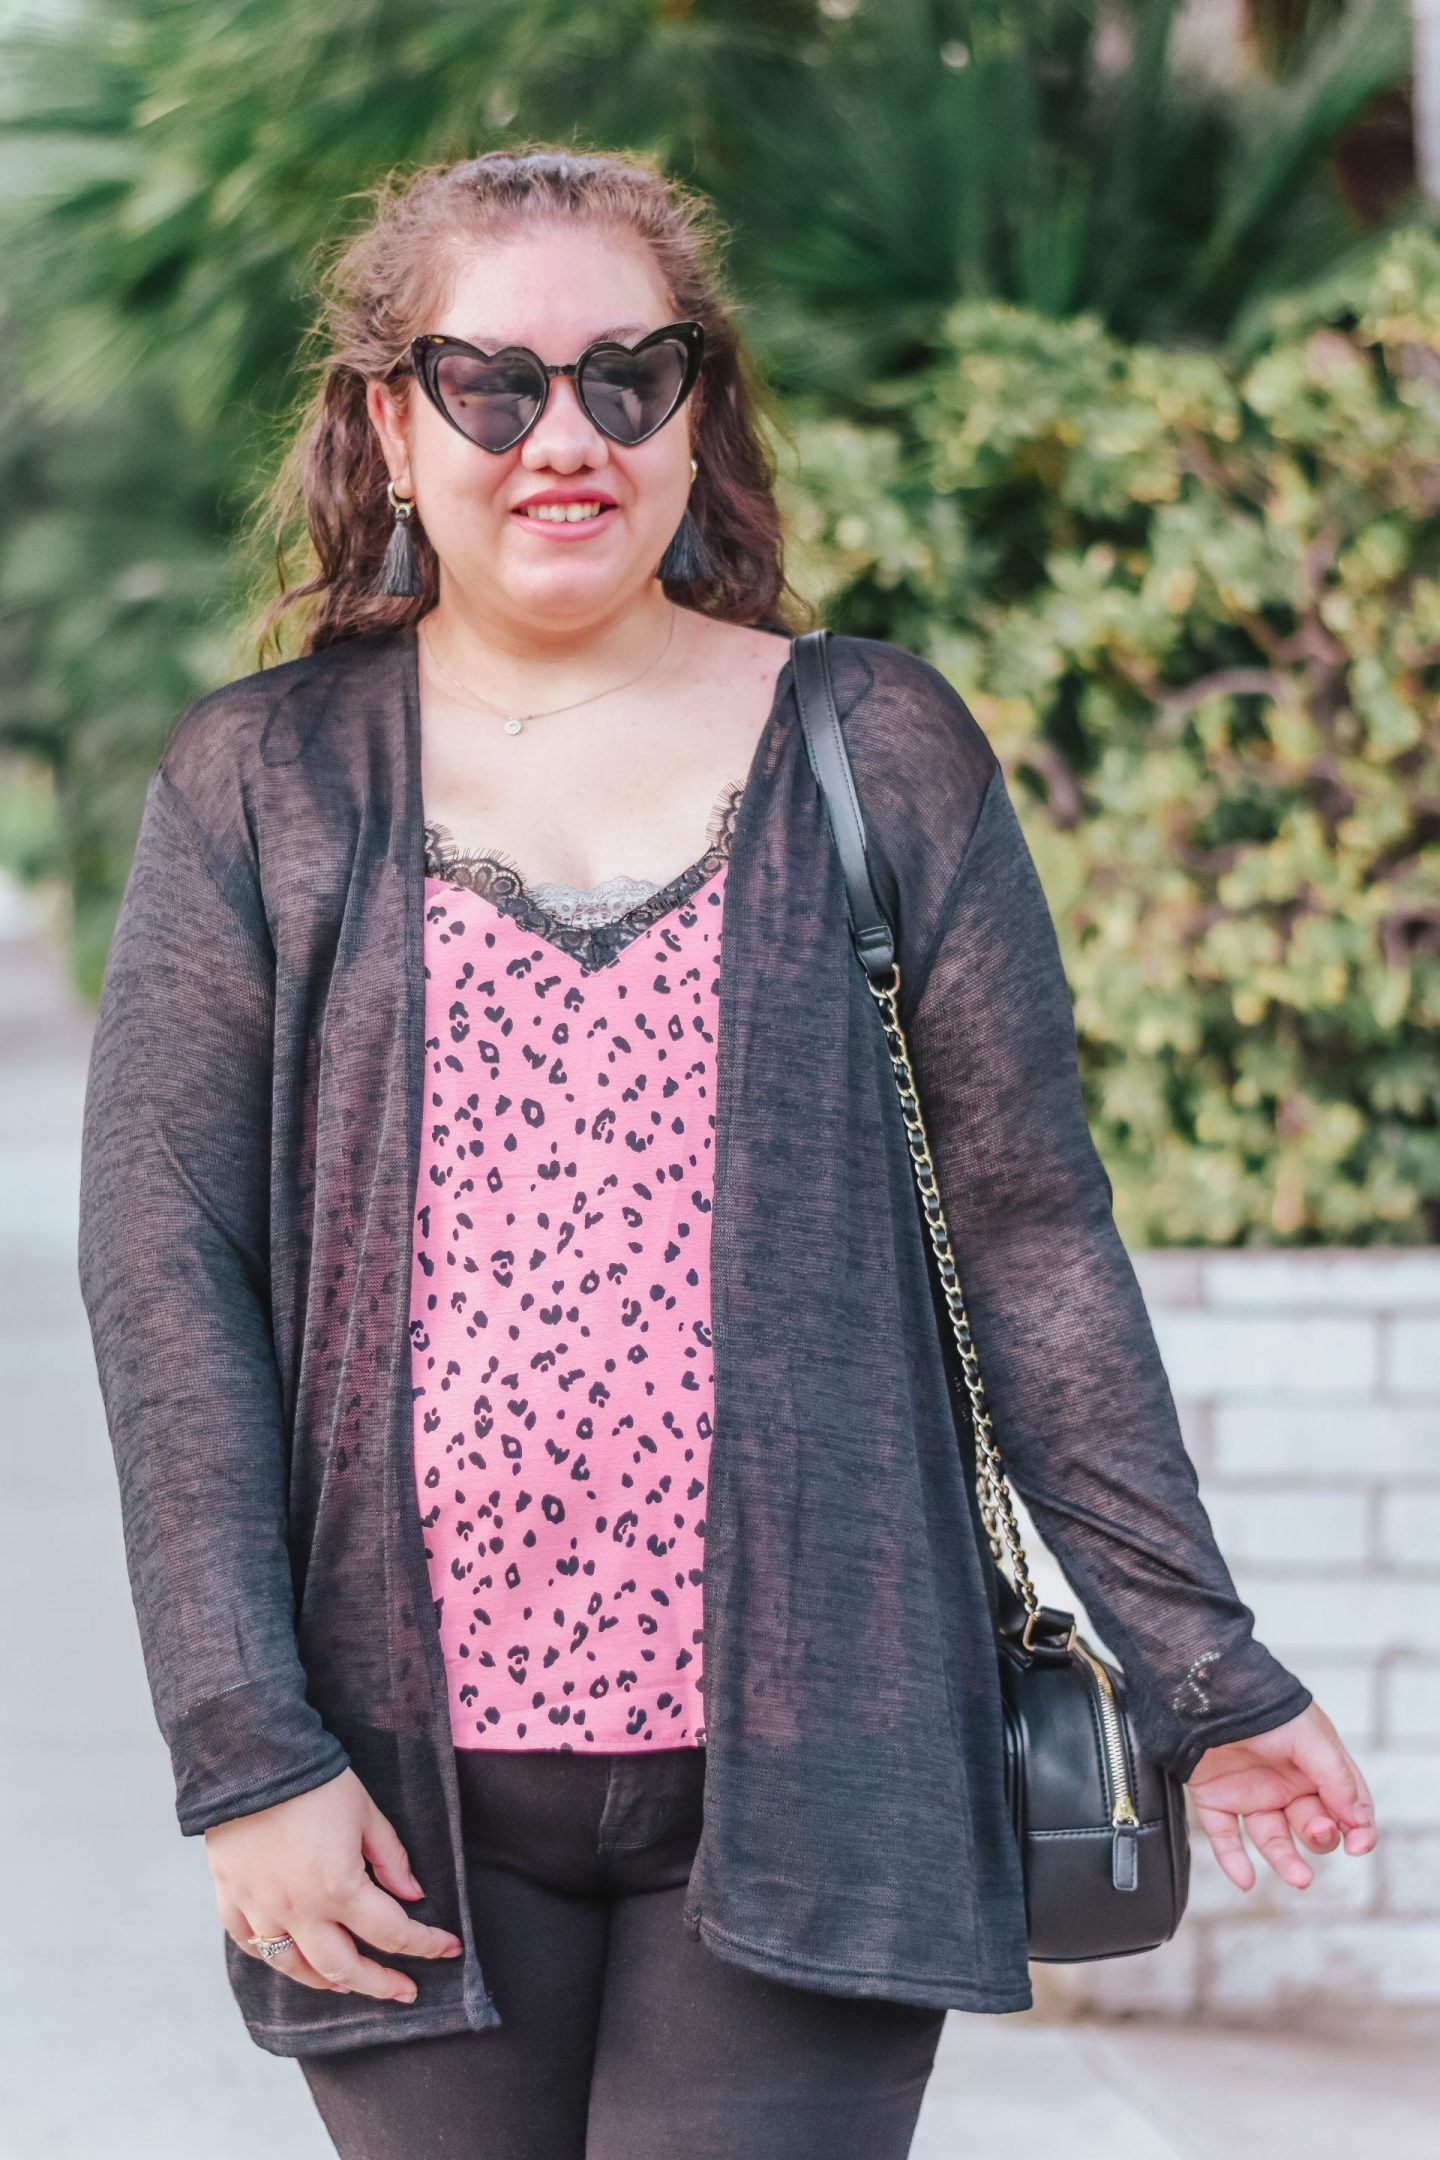 How To Wear Leopard Print When You're Not a Fan